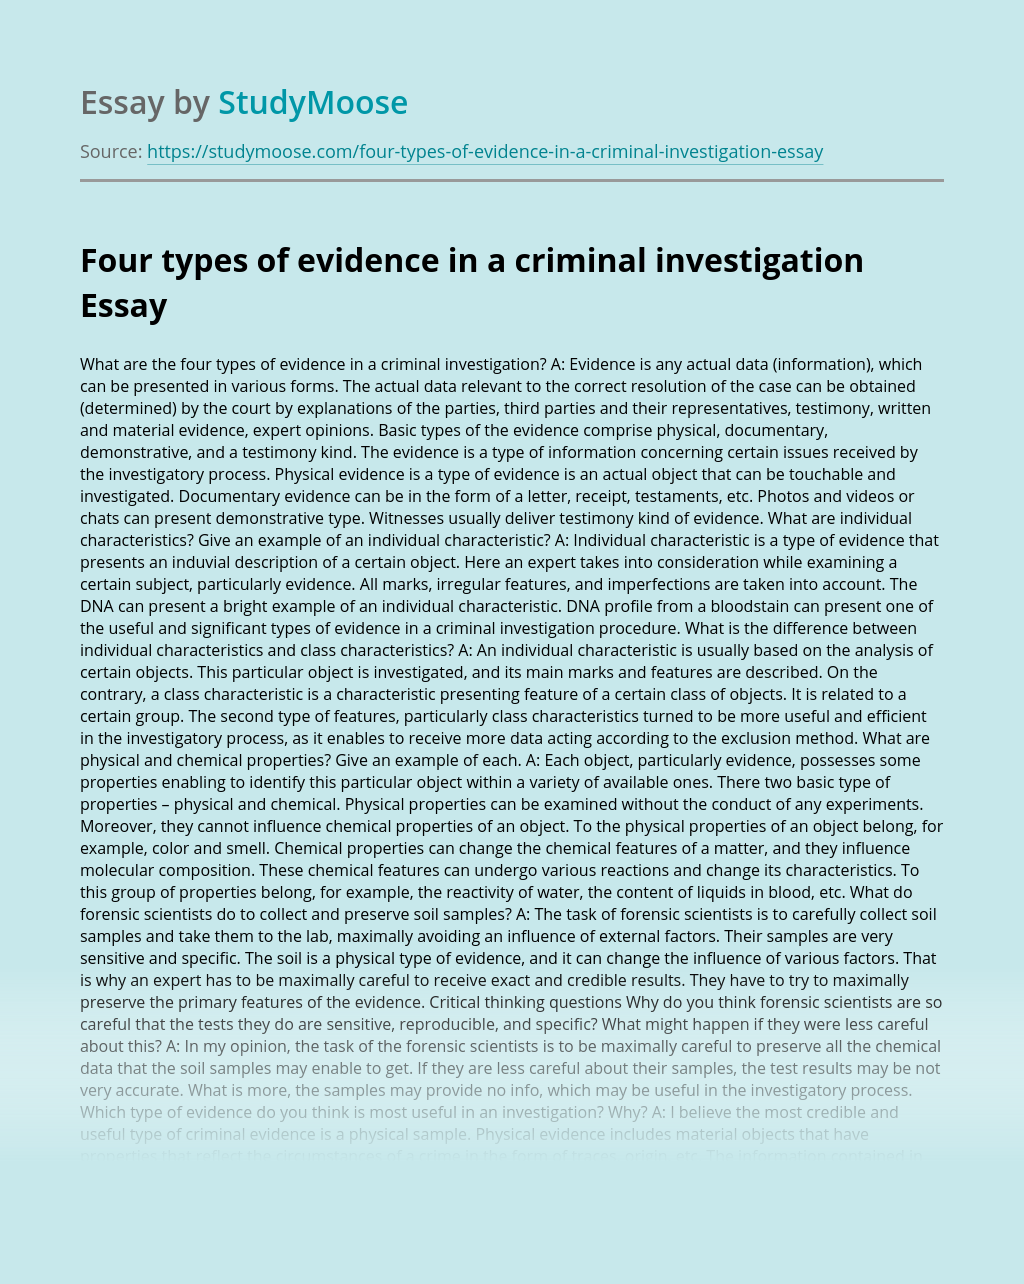 Four Types of Evidence in a Criminal Investigation